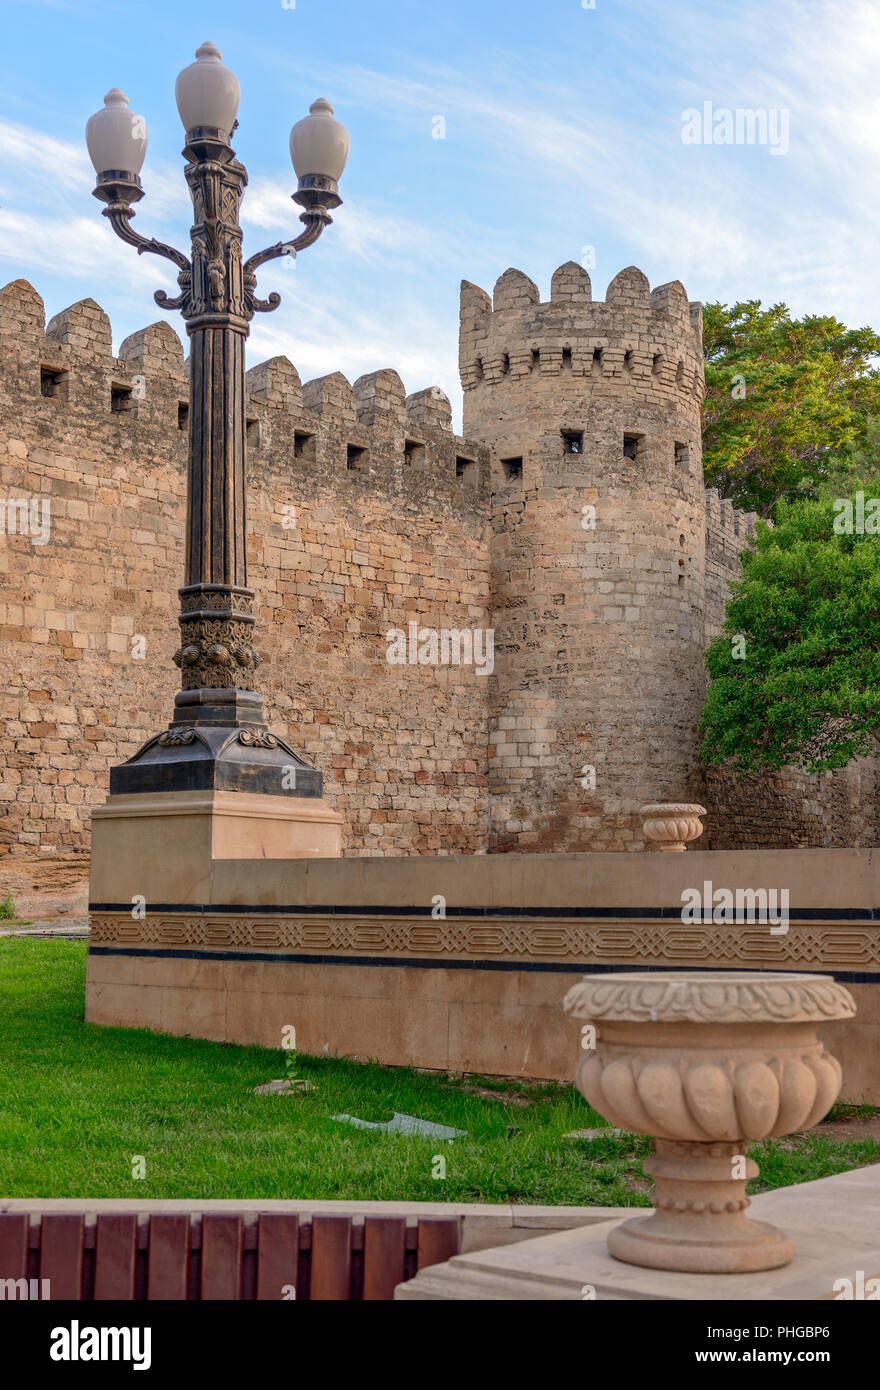 Fortress wall in old city Baku, Azerbaijan - Stock Image